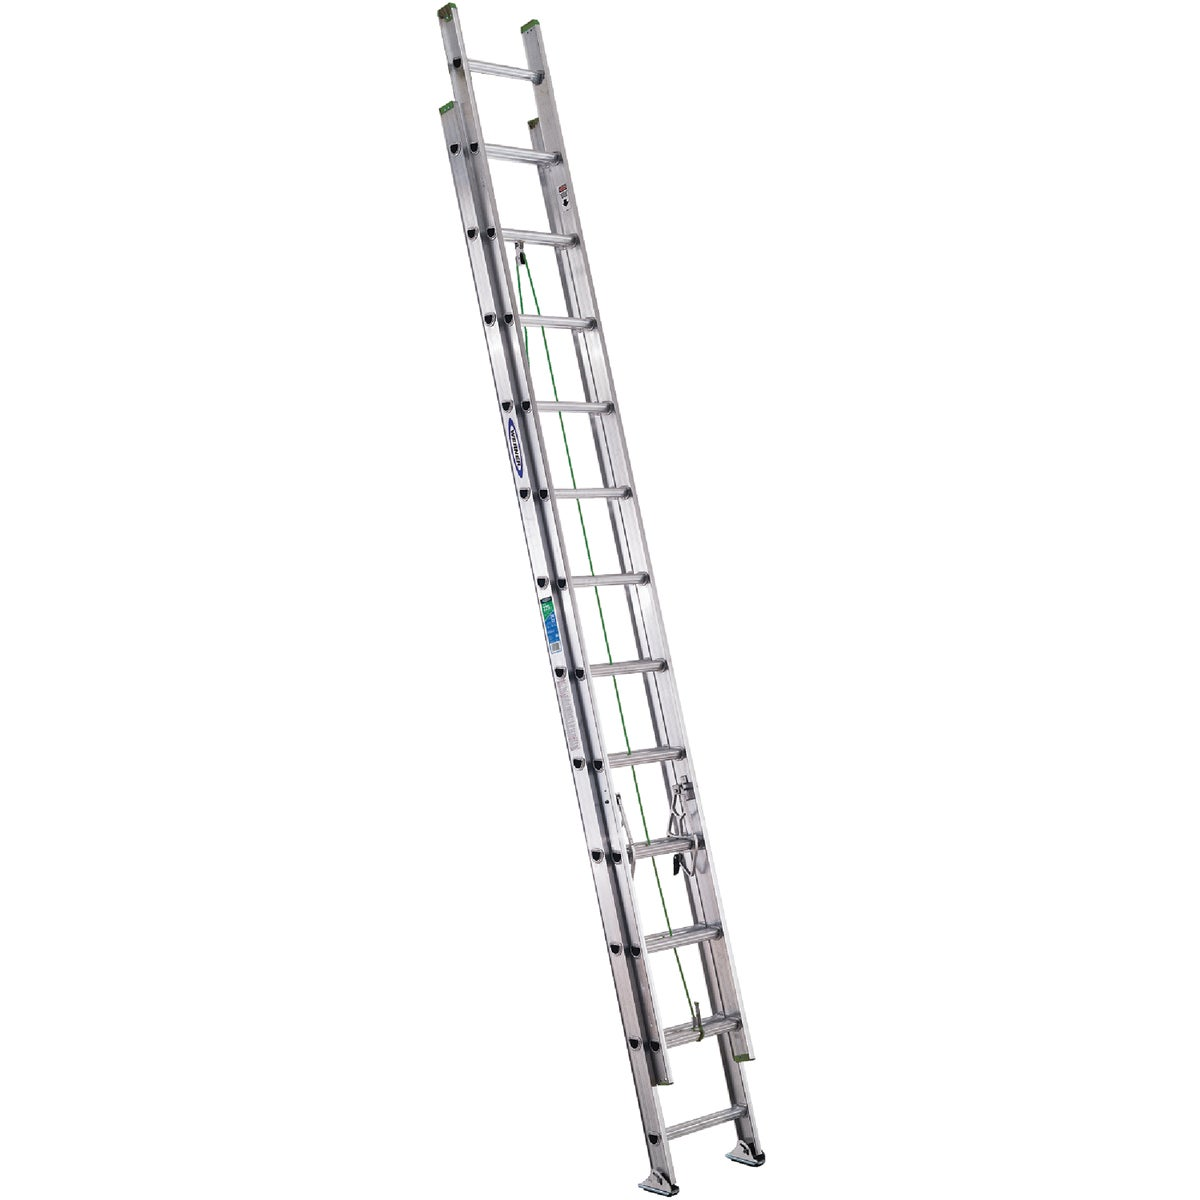 T-2 24' ALUM EXT LADDER - D1224-2 by Werner Ladder